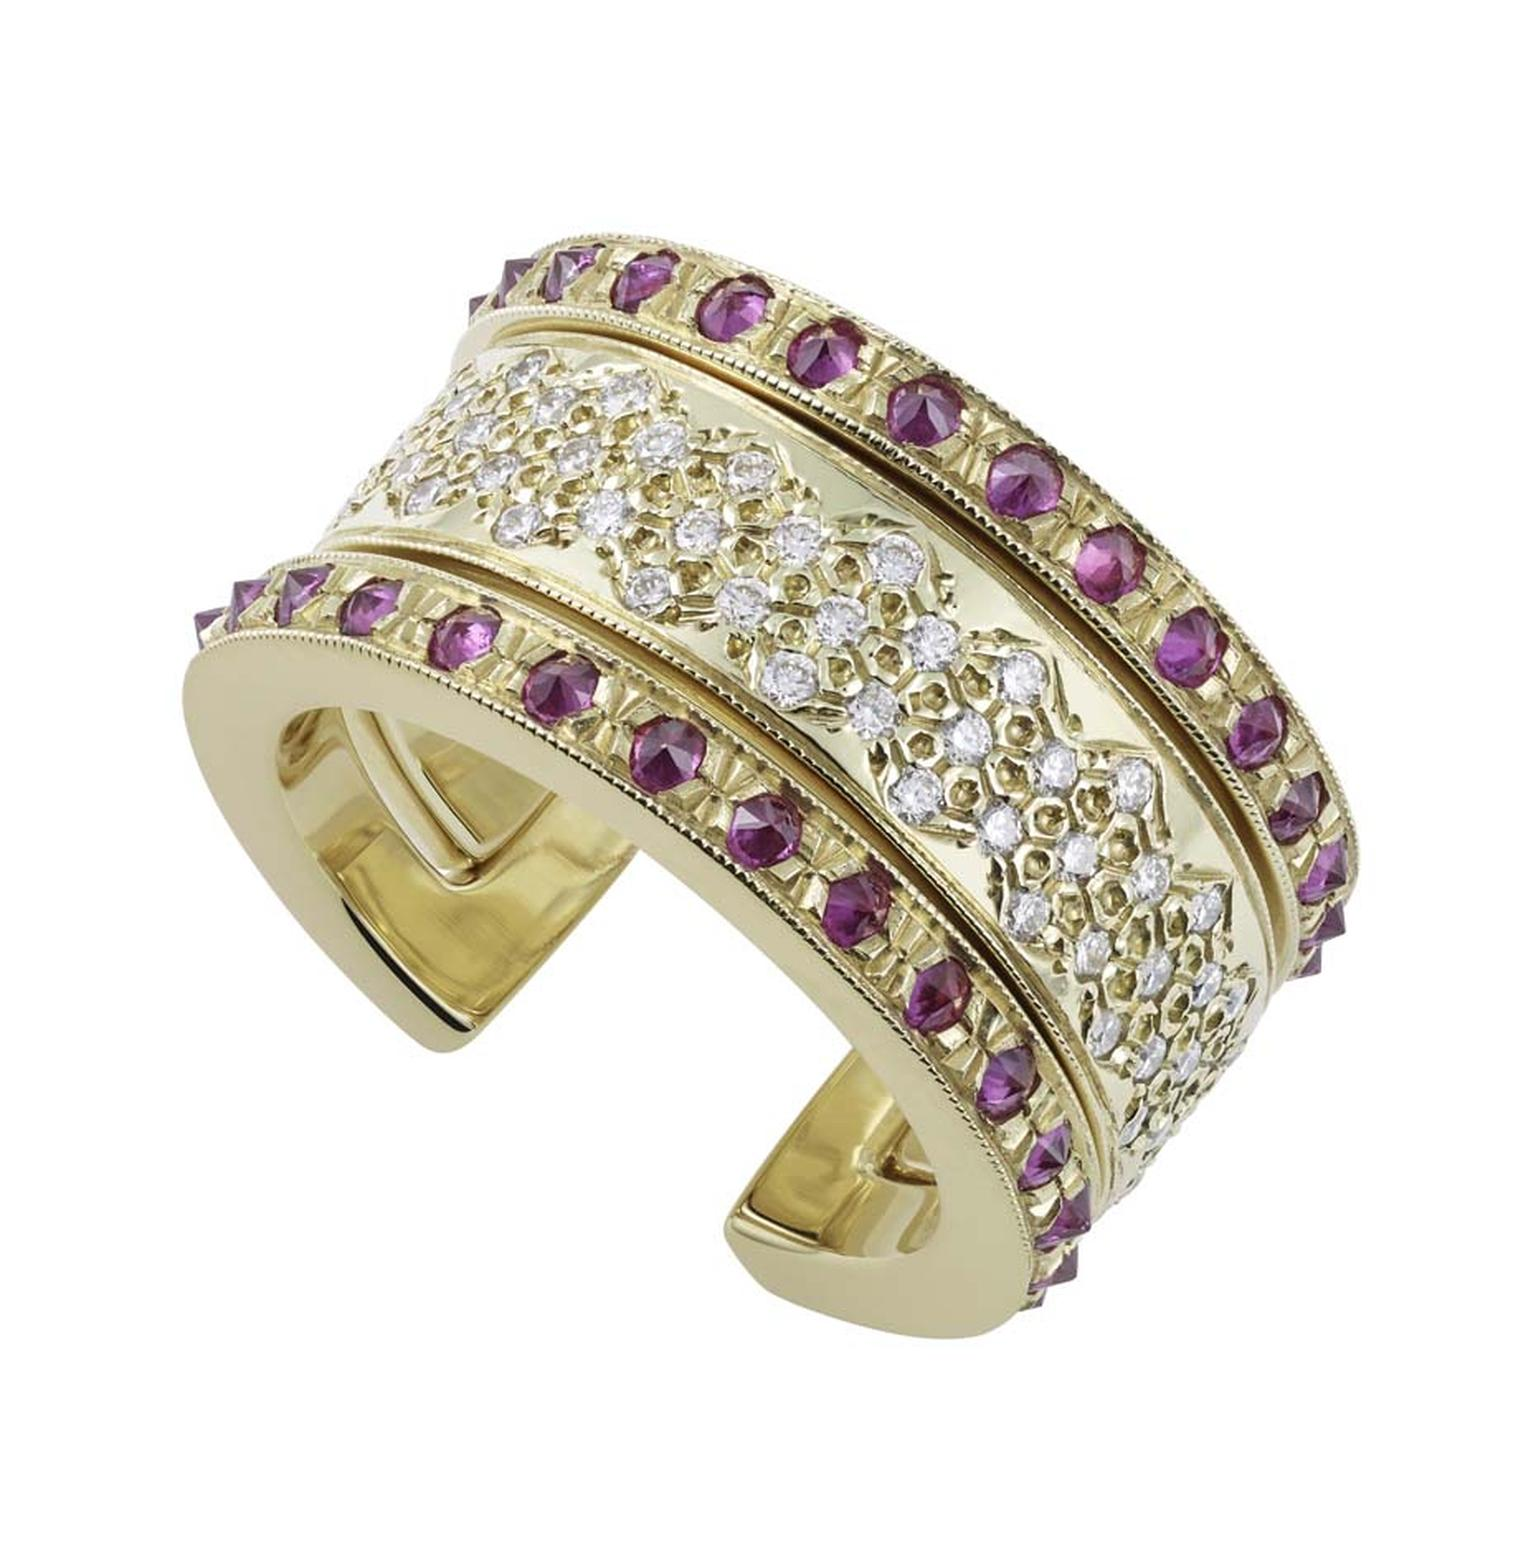 Misahara Koral ring in gold with diamonds and rubies. The two separate cuff rings can be worn together or apart.